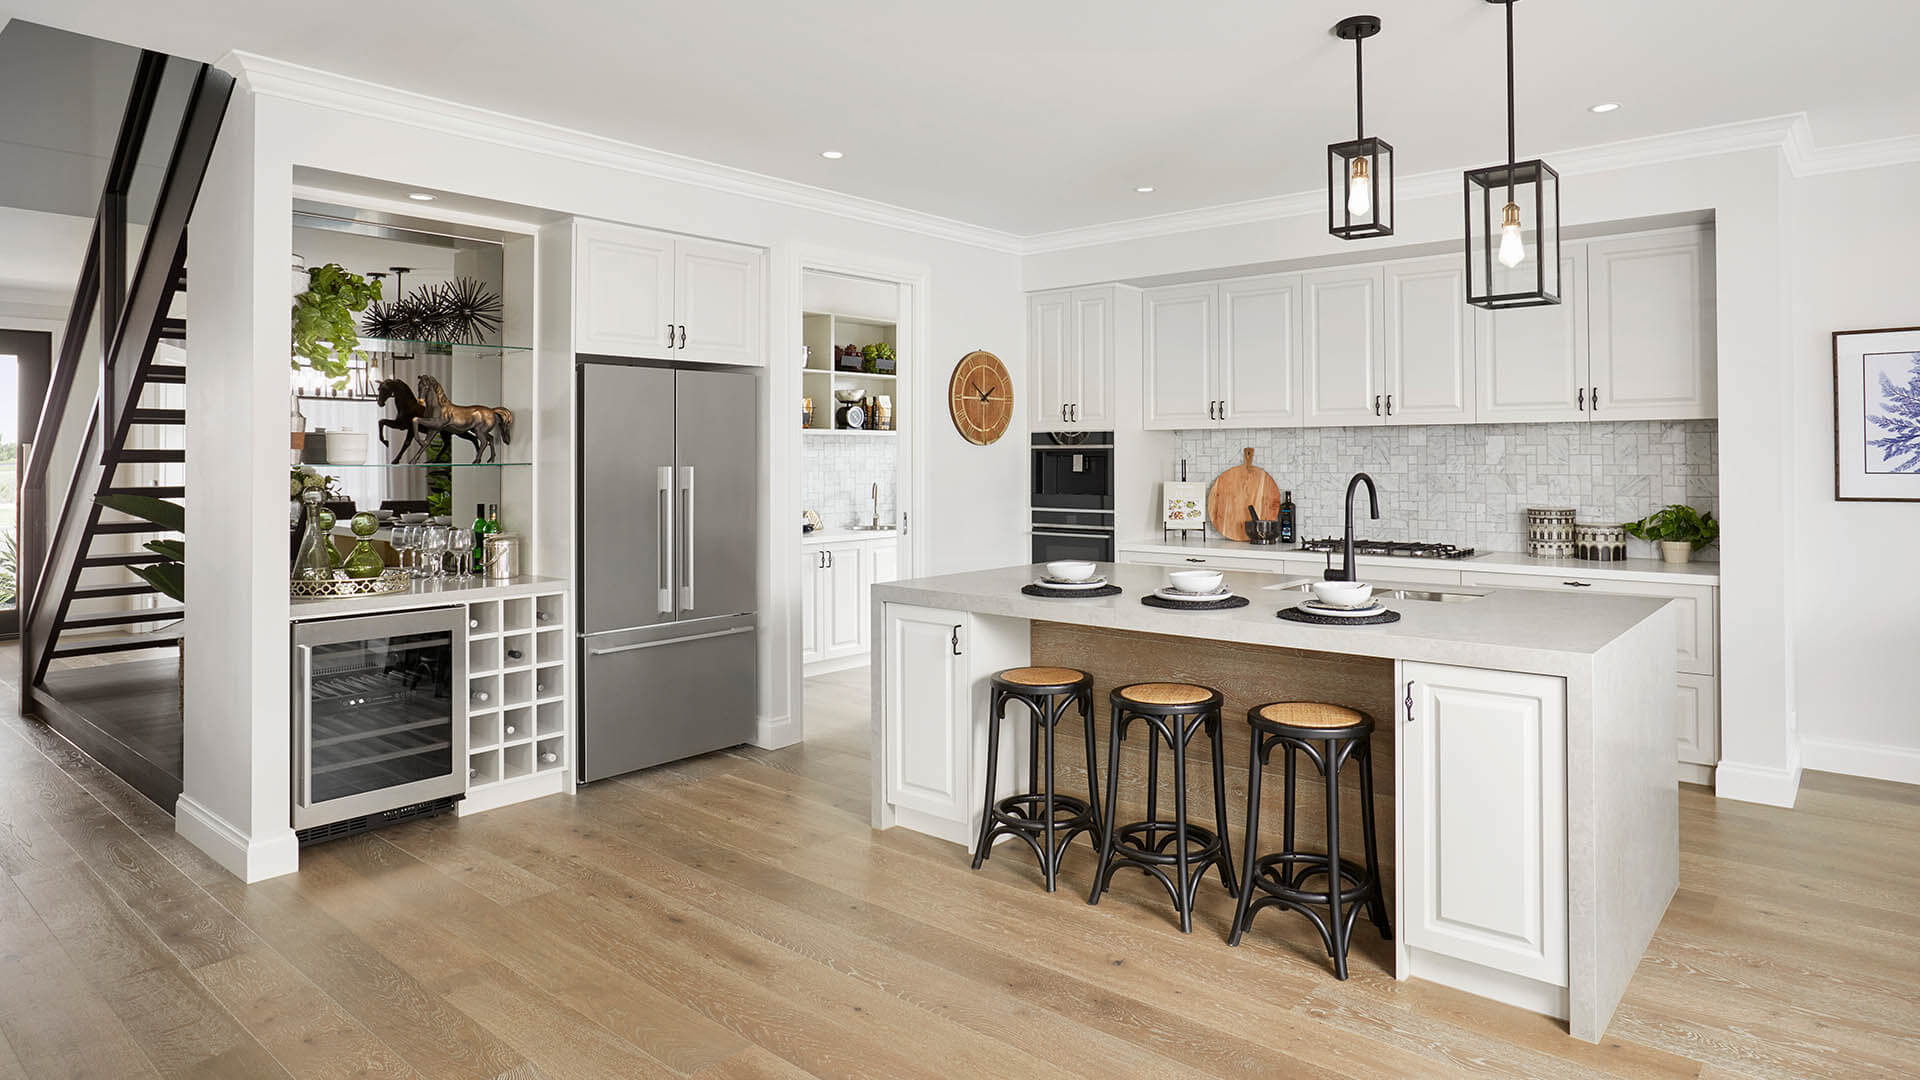 Lorne kitchen2